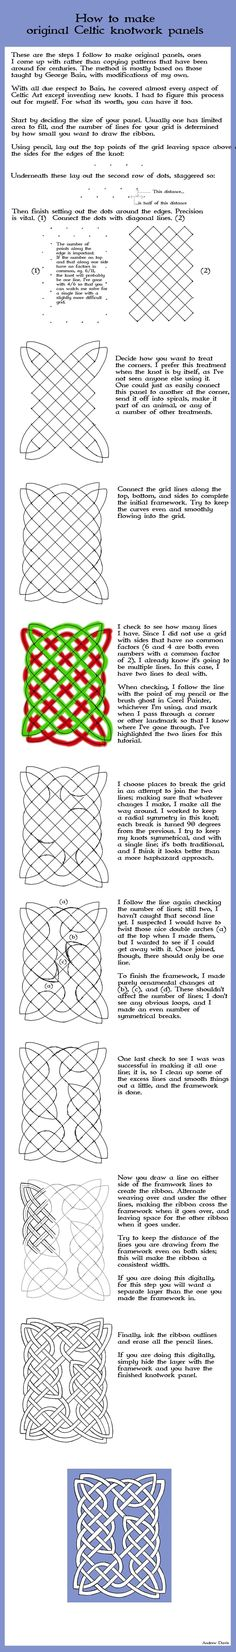 My process for making original Celtic Knot panels. Each artist has their own method, and they each have a different flair to them; here& links to a few really cool tutorials for celtic knotwork pa. Celtic Symbols, Celtic Art, Celtic Knots, Triquetra, Celtic Drawings, Celtic Knot Tutorial, Celtic Quilt, Inkscape Tutorials, Celtic Knot Designs